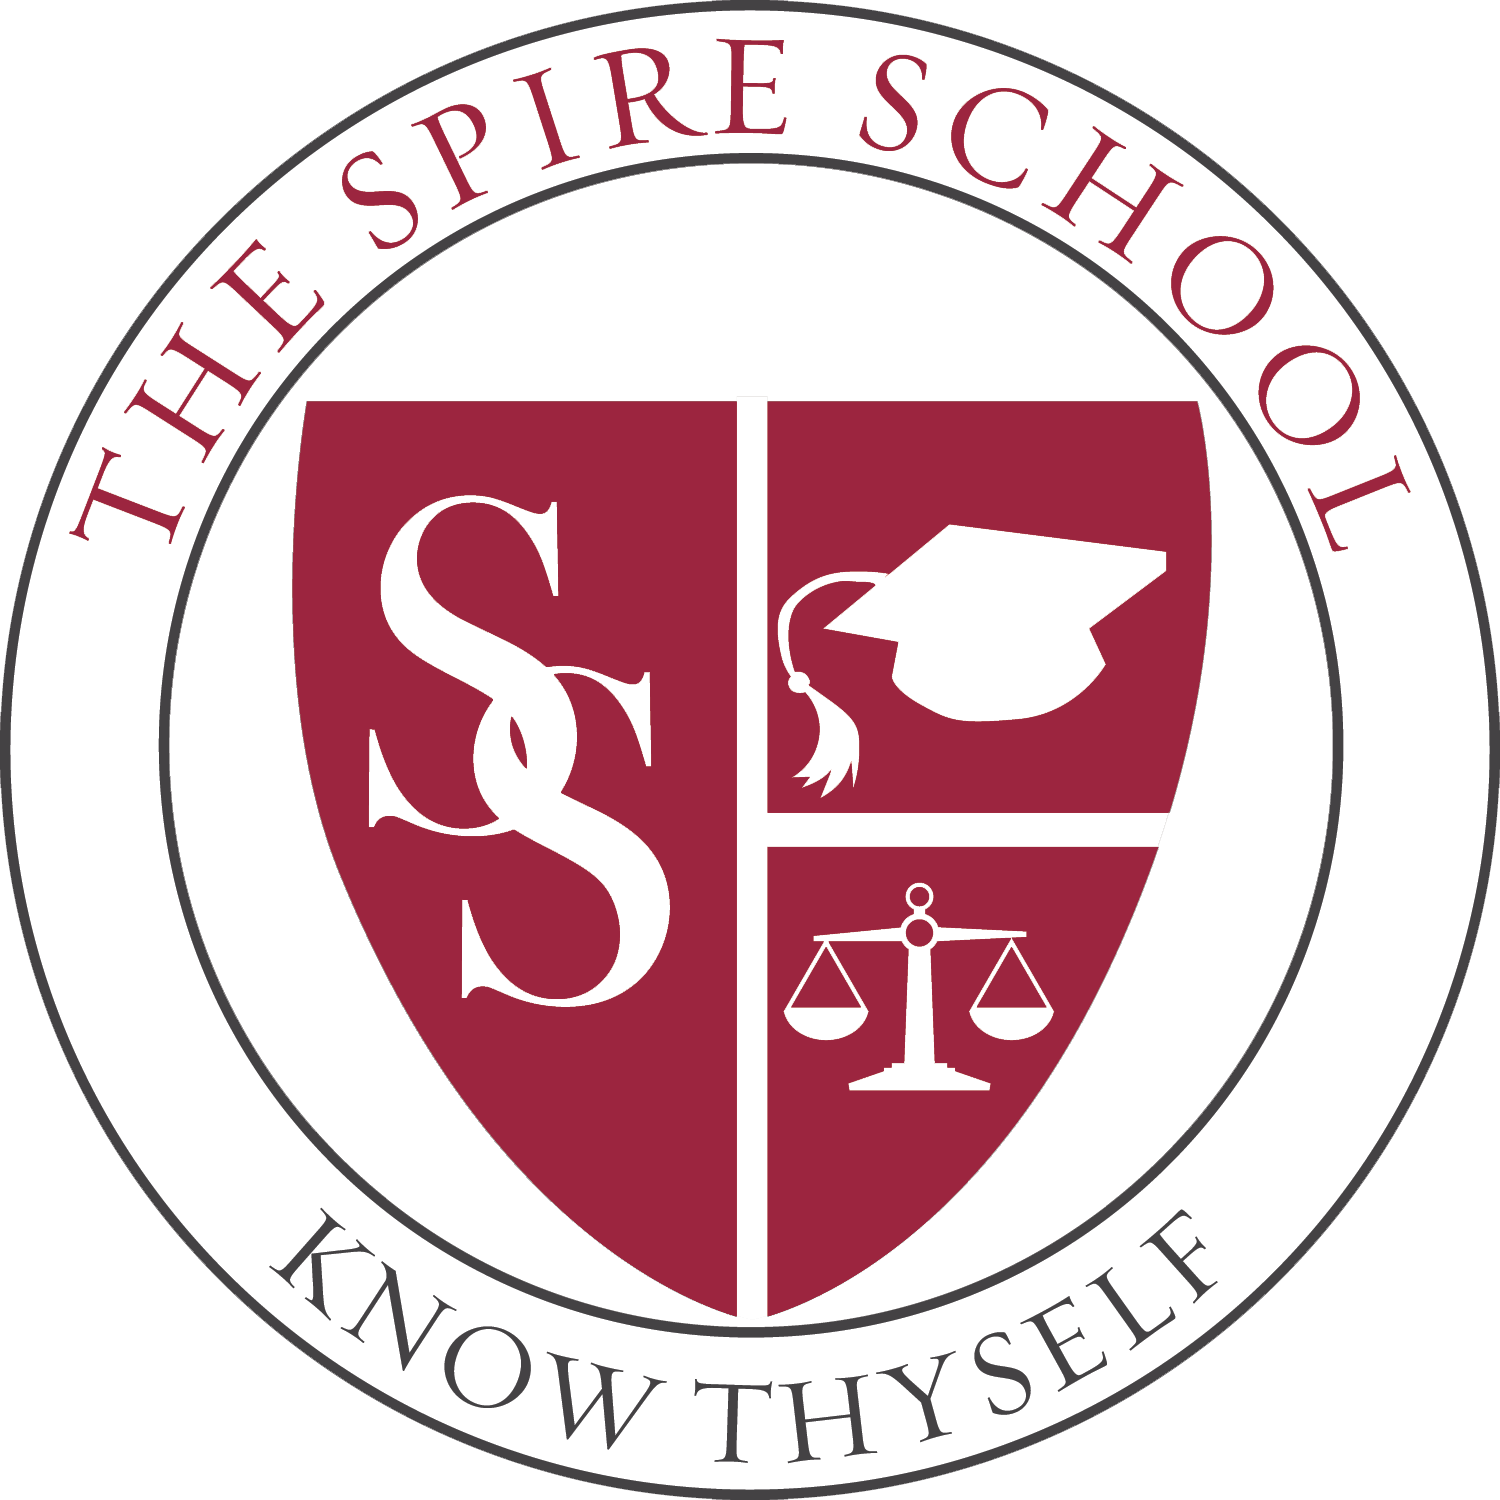 Psychology clipart positive emotion. The spire school